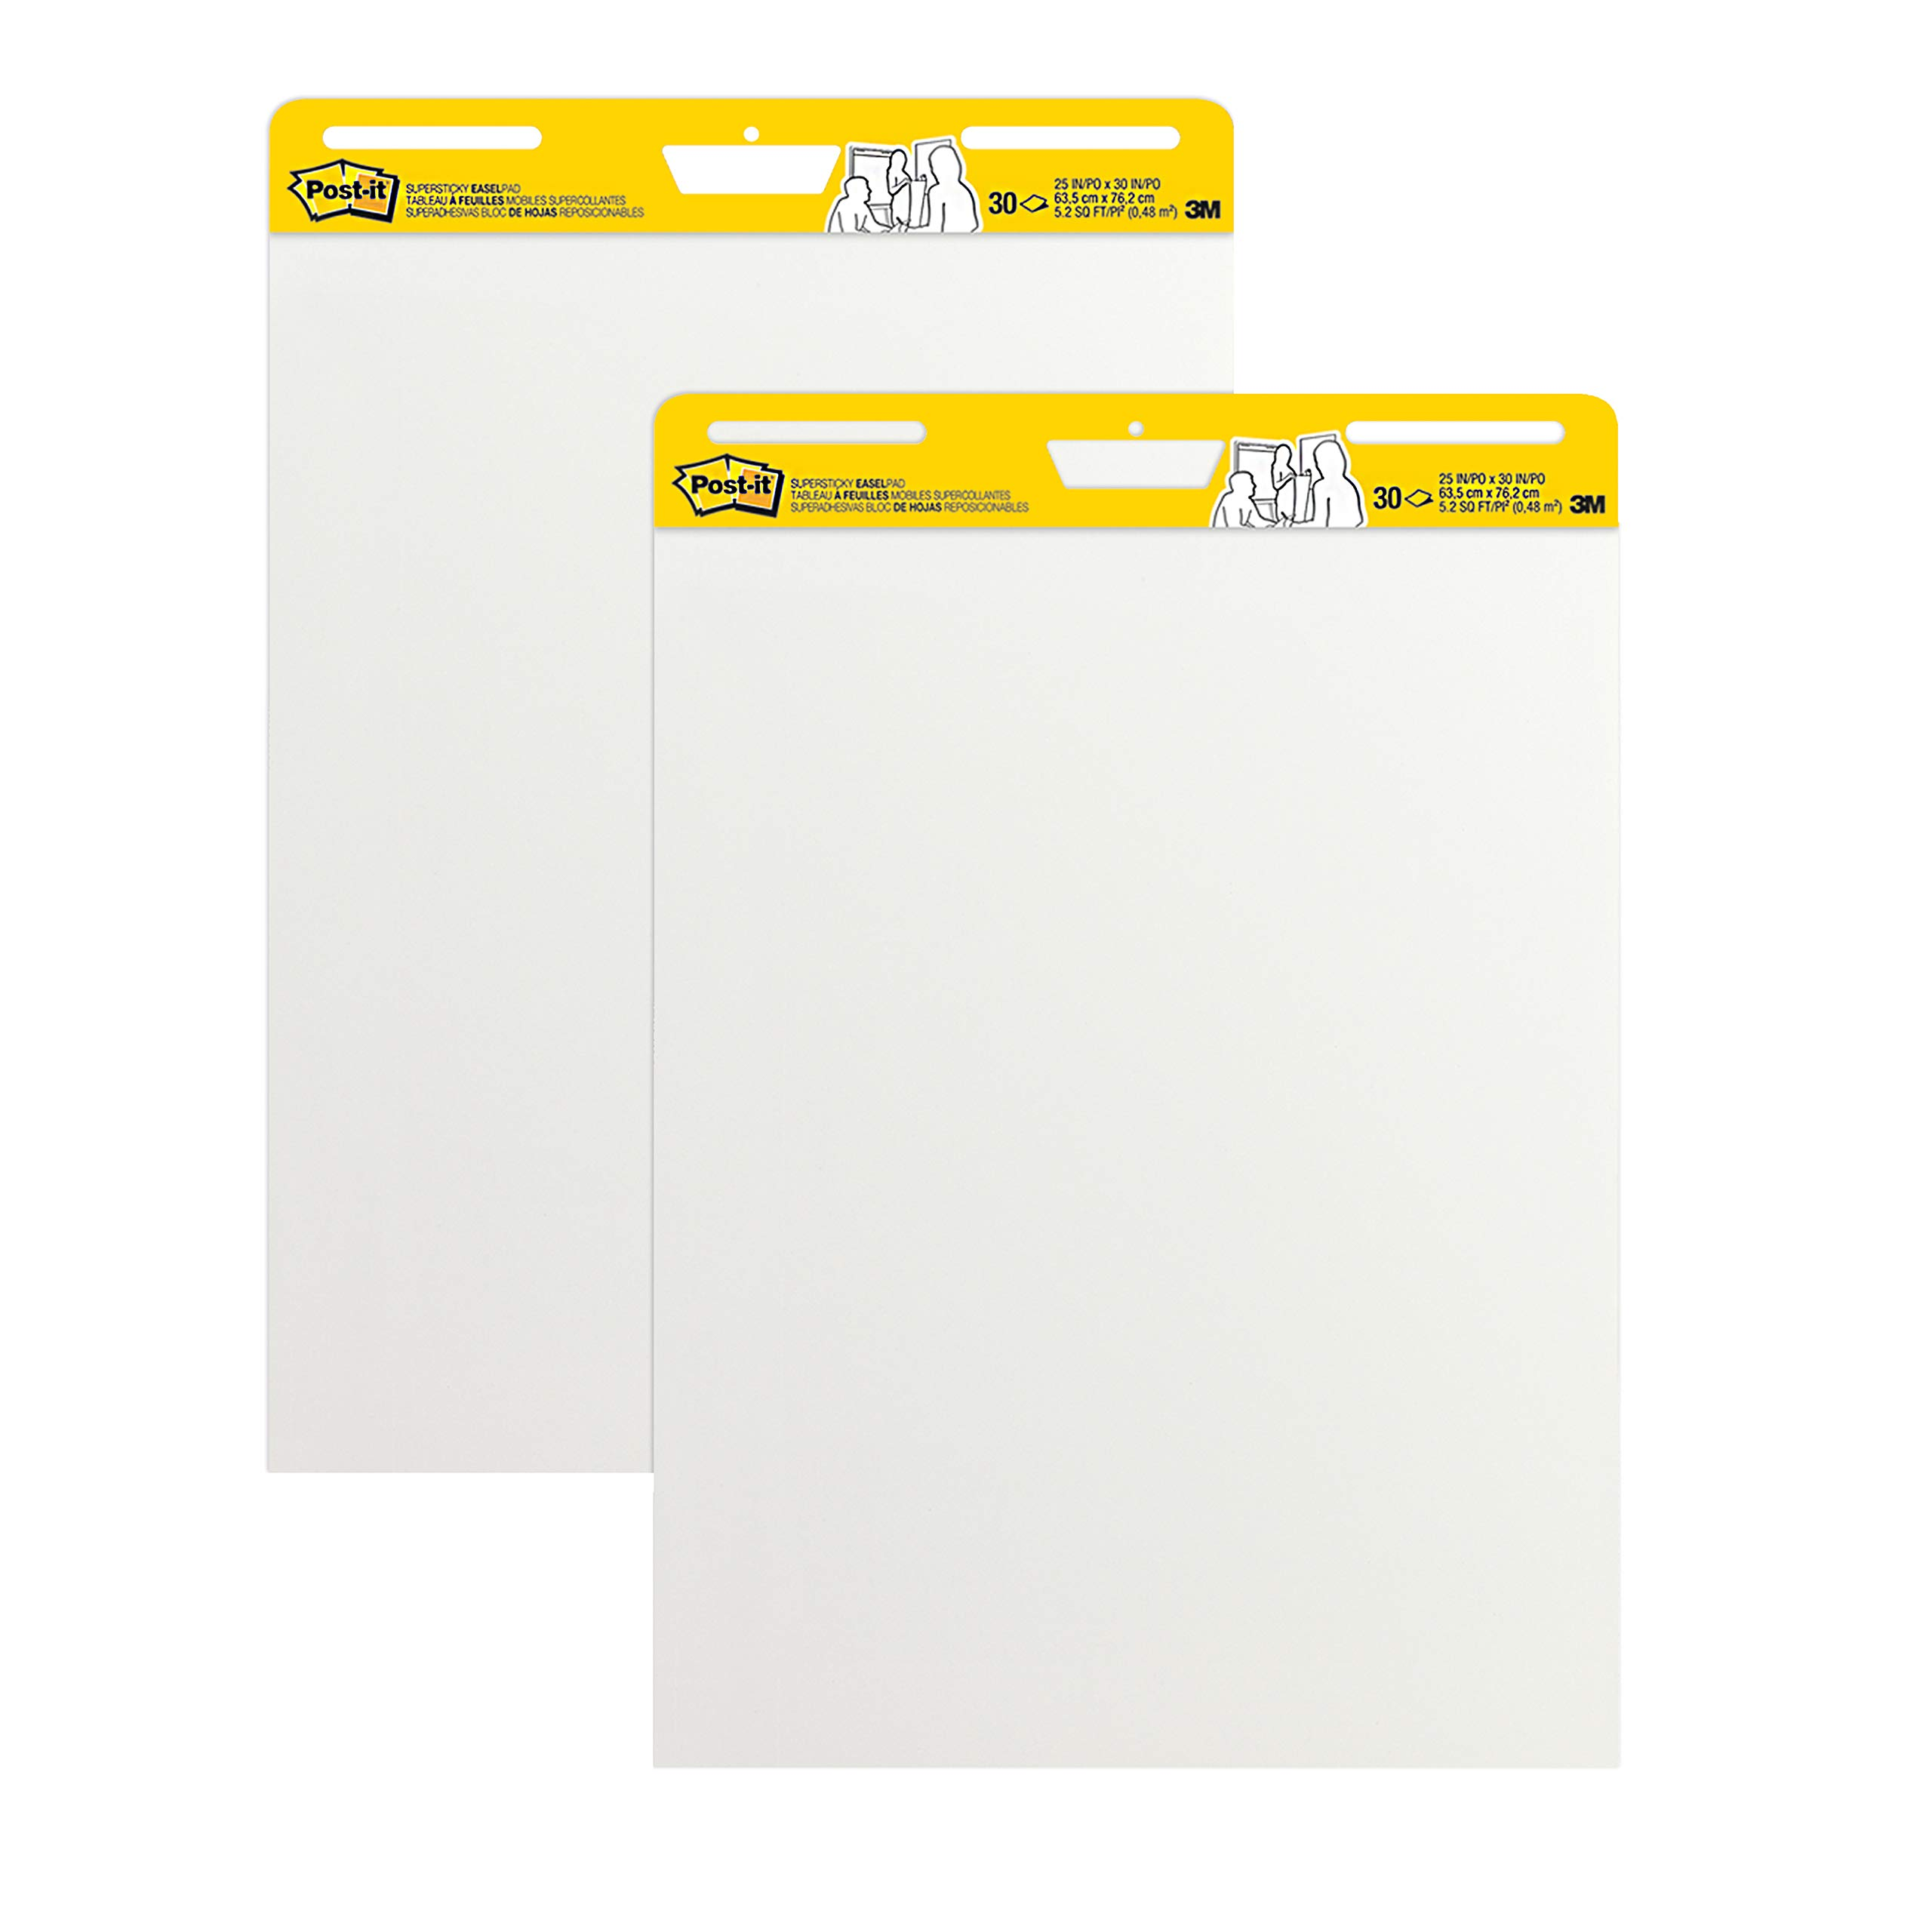 Amazon Com Post It Super Sticky Easel Pad 25 In X 30 In White 30 Sheets Pad 2 Pad Pack Great For Virtual Teachers And Students 559 Post It Easel Pad Office Products